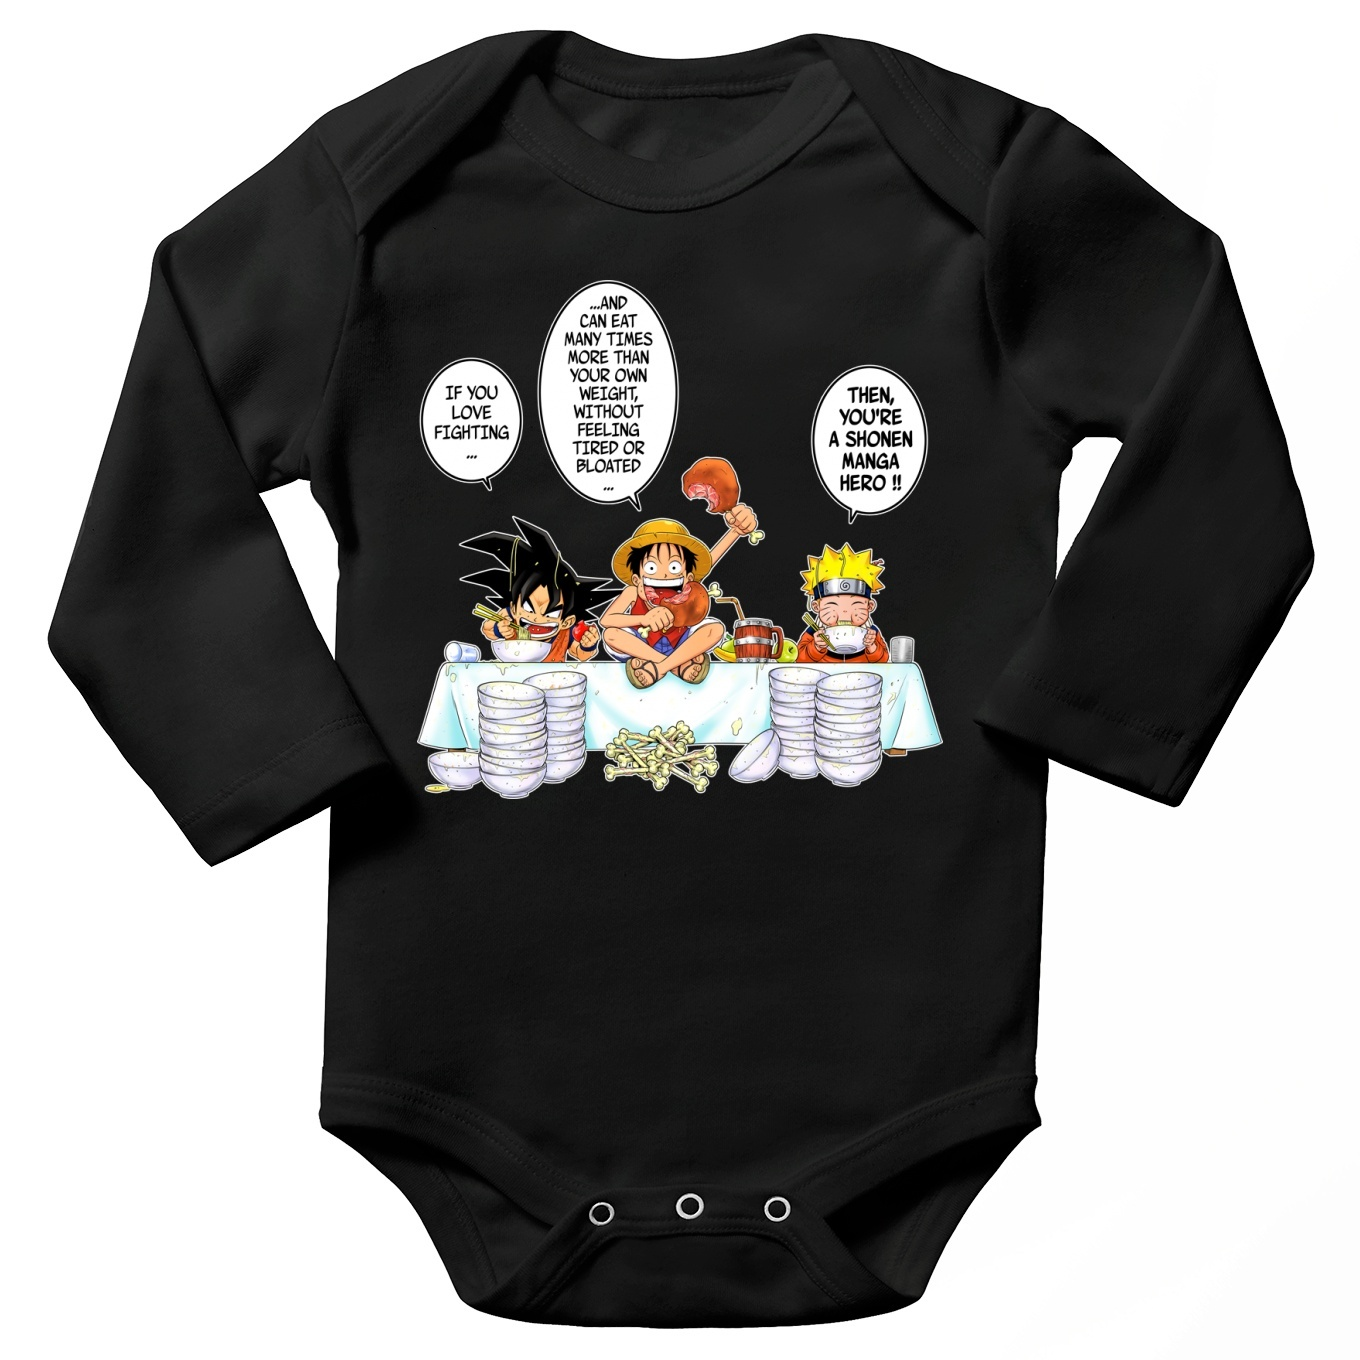 5793d9971 Funny Dragon Ball Z -One piece - Naruto Long sleeve Baby Bodysuit ...